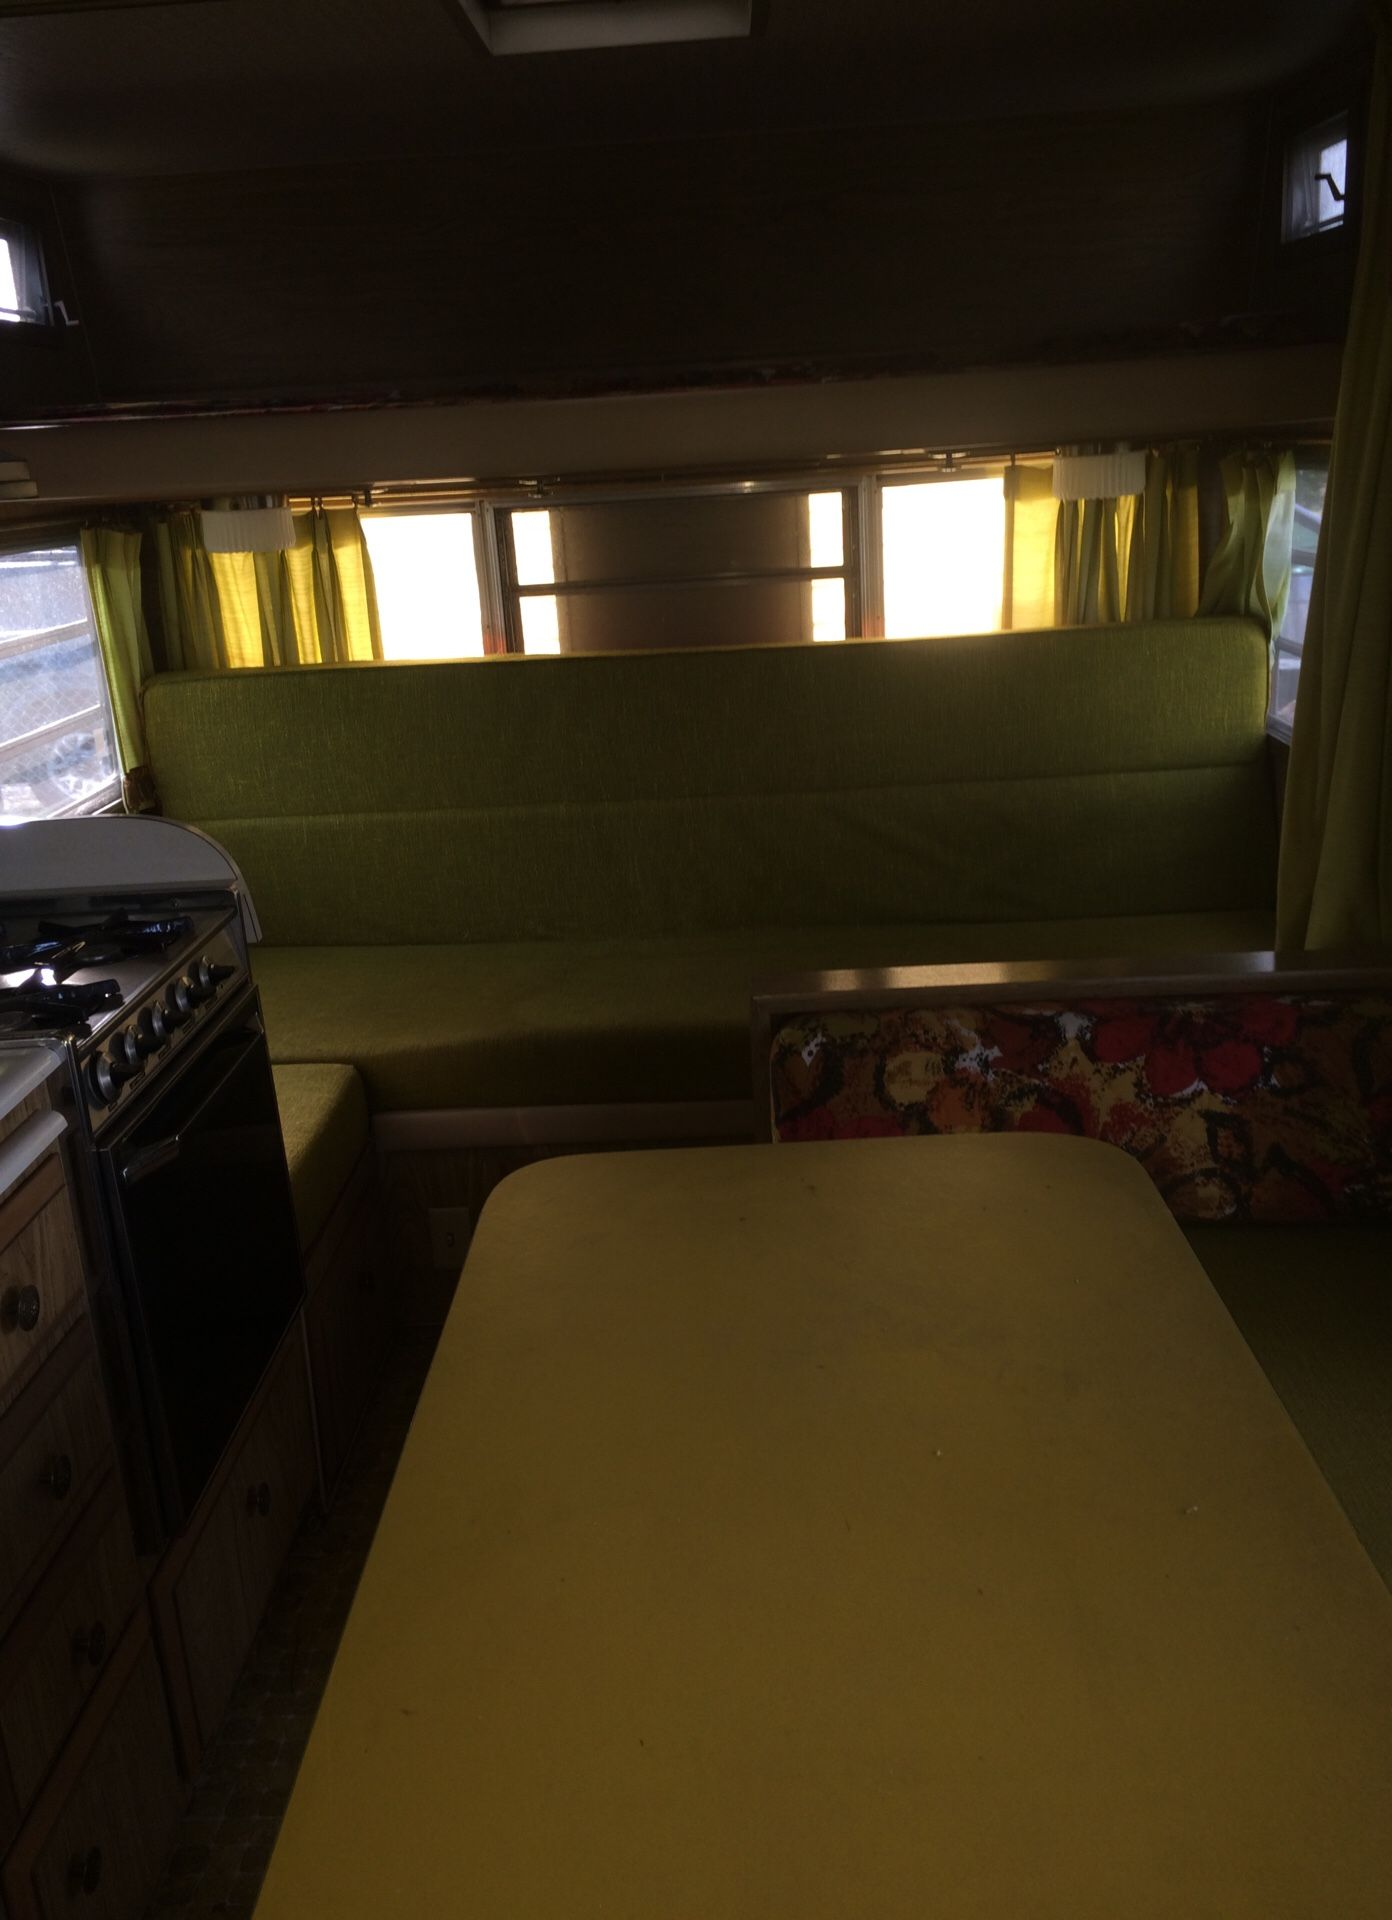 TERRY 19 ft. Trailer, Very Clean, his a awning, good tires$$2000.00 or OBO